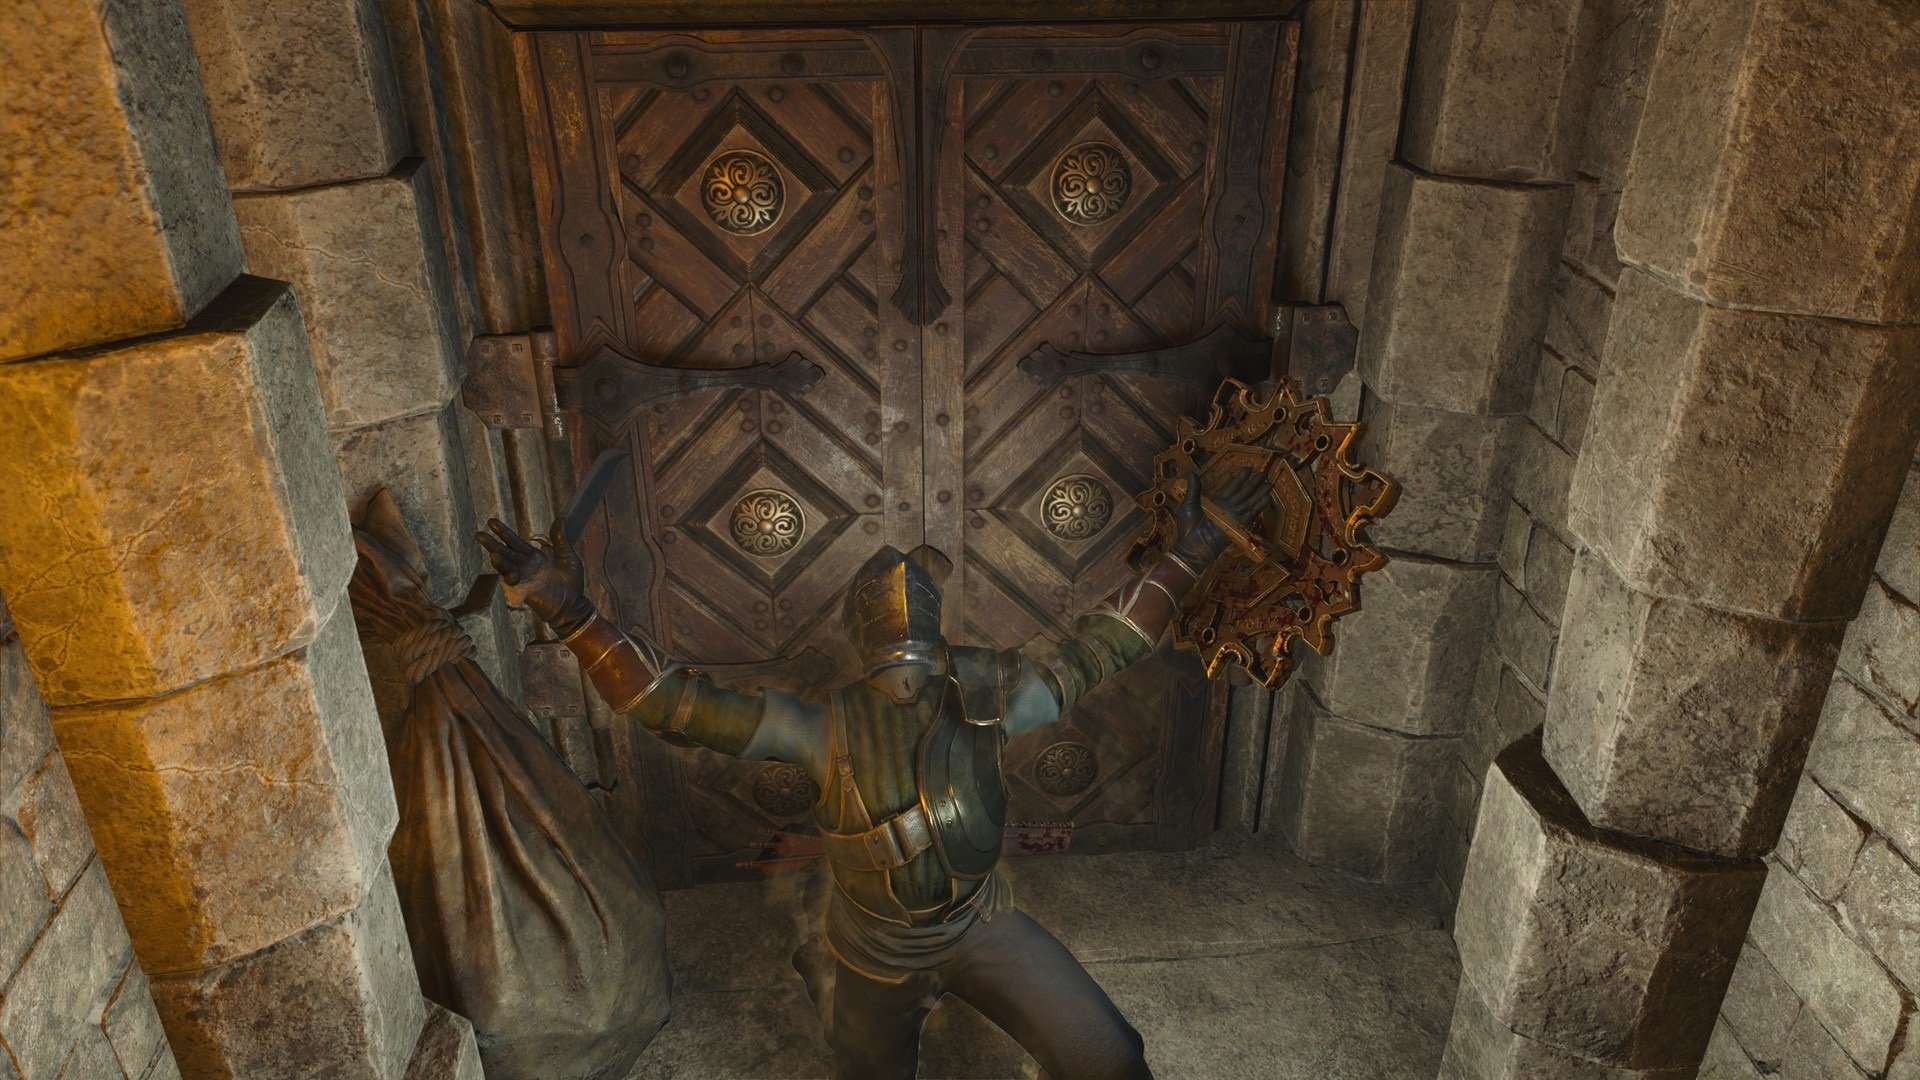 The Demon's Souls community is offering a bounty for the secret door solution screenshot